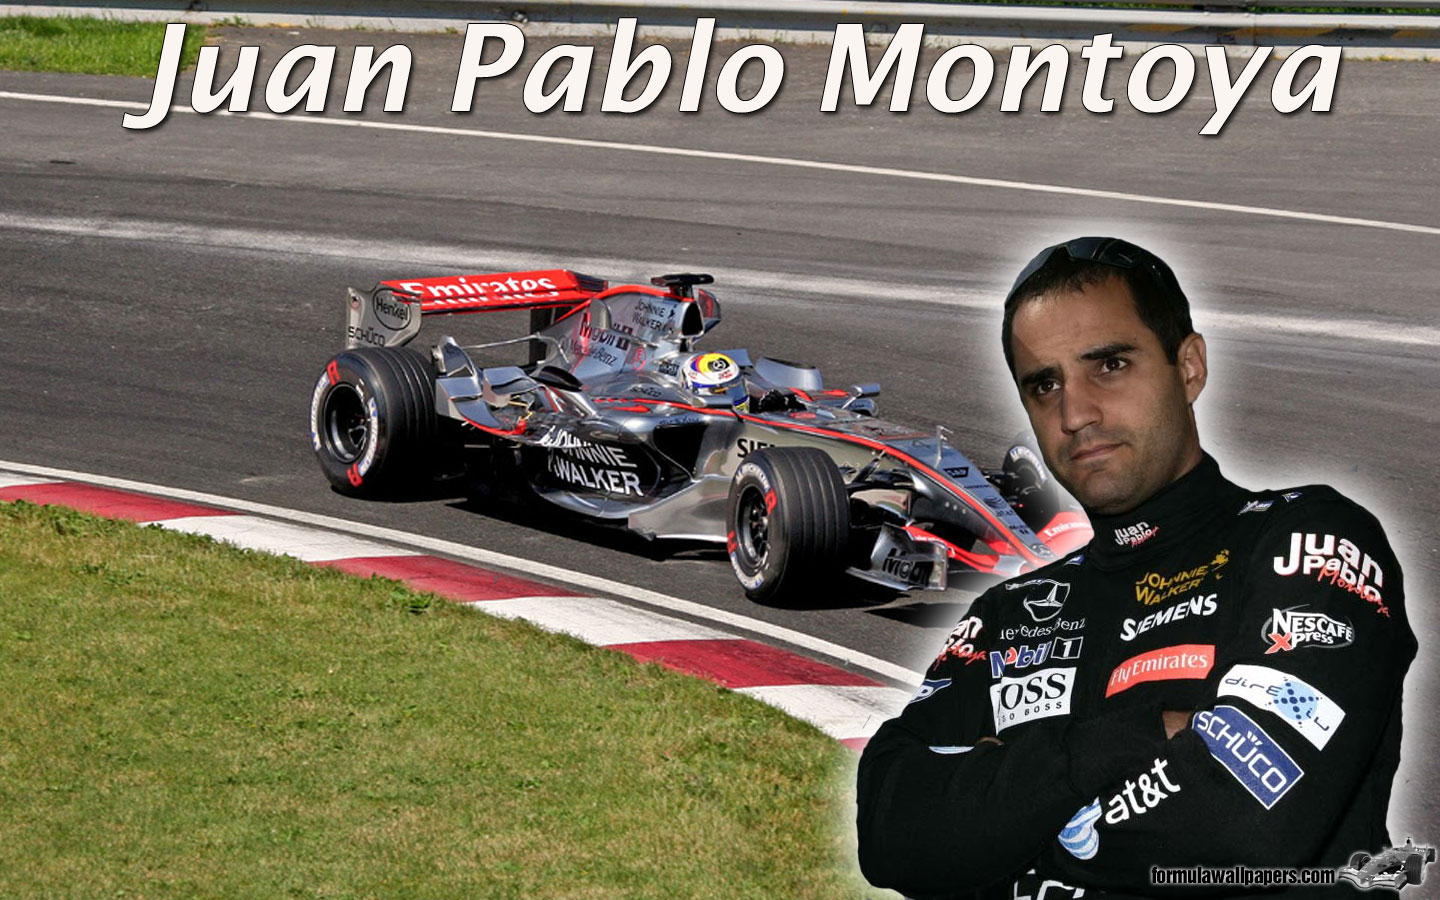 Juan Pablo Montoya; Race car driver, and also a Dad